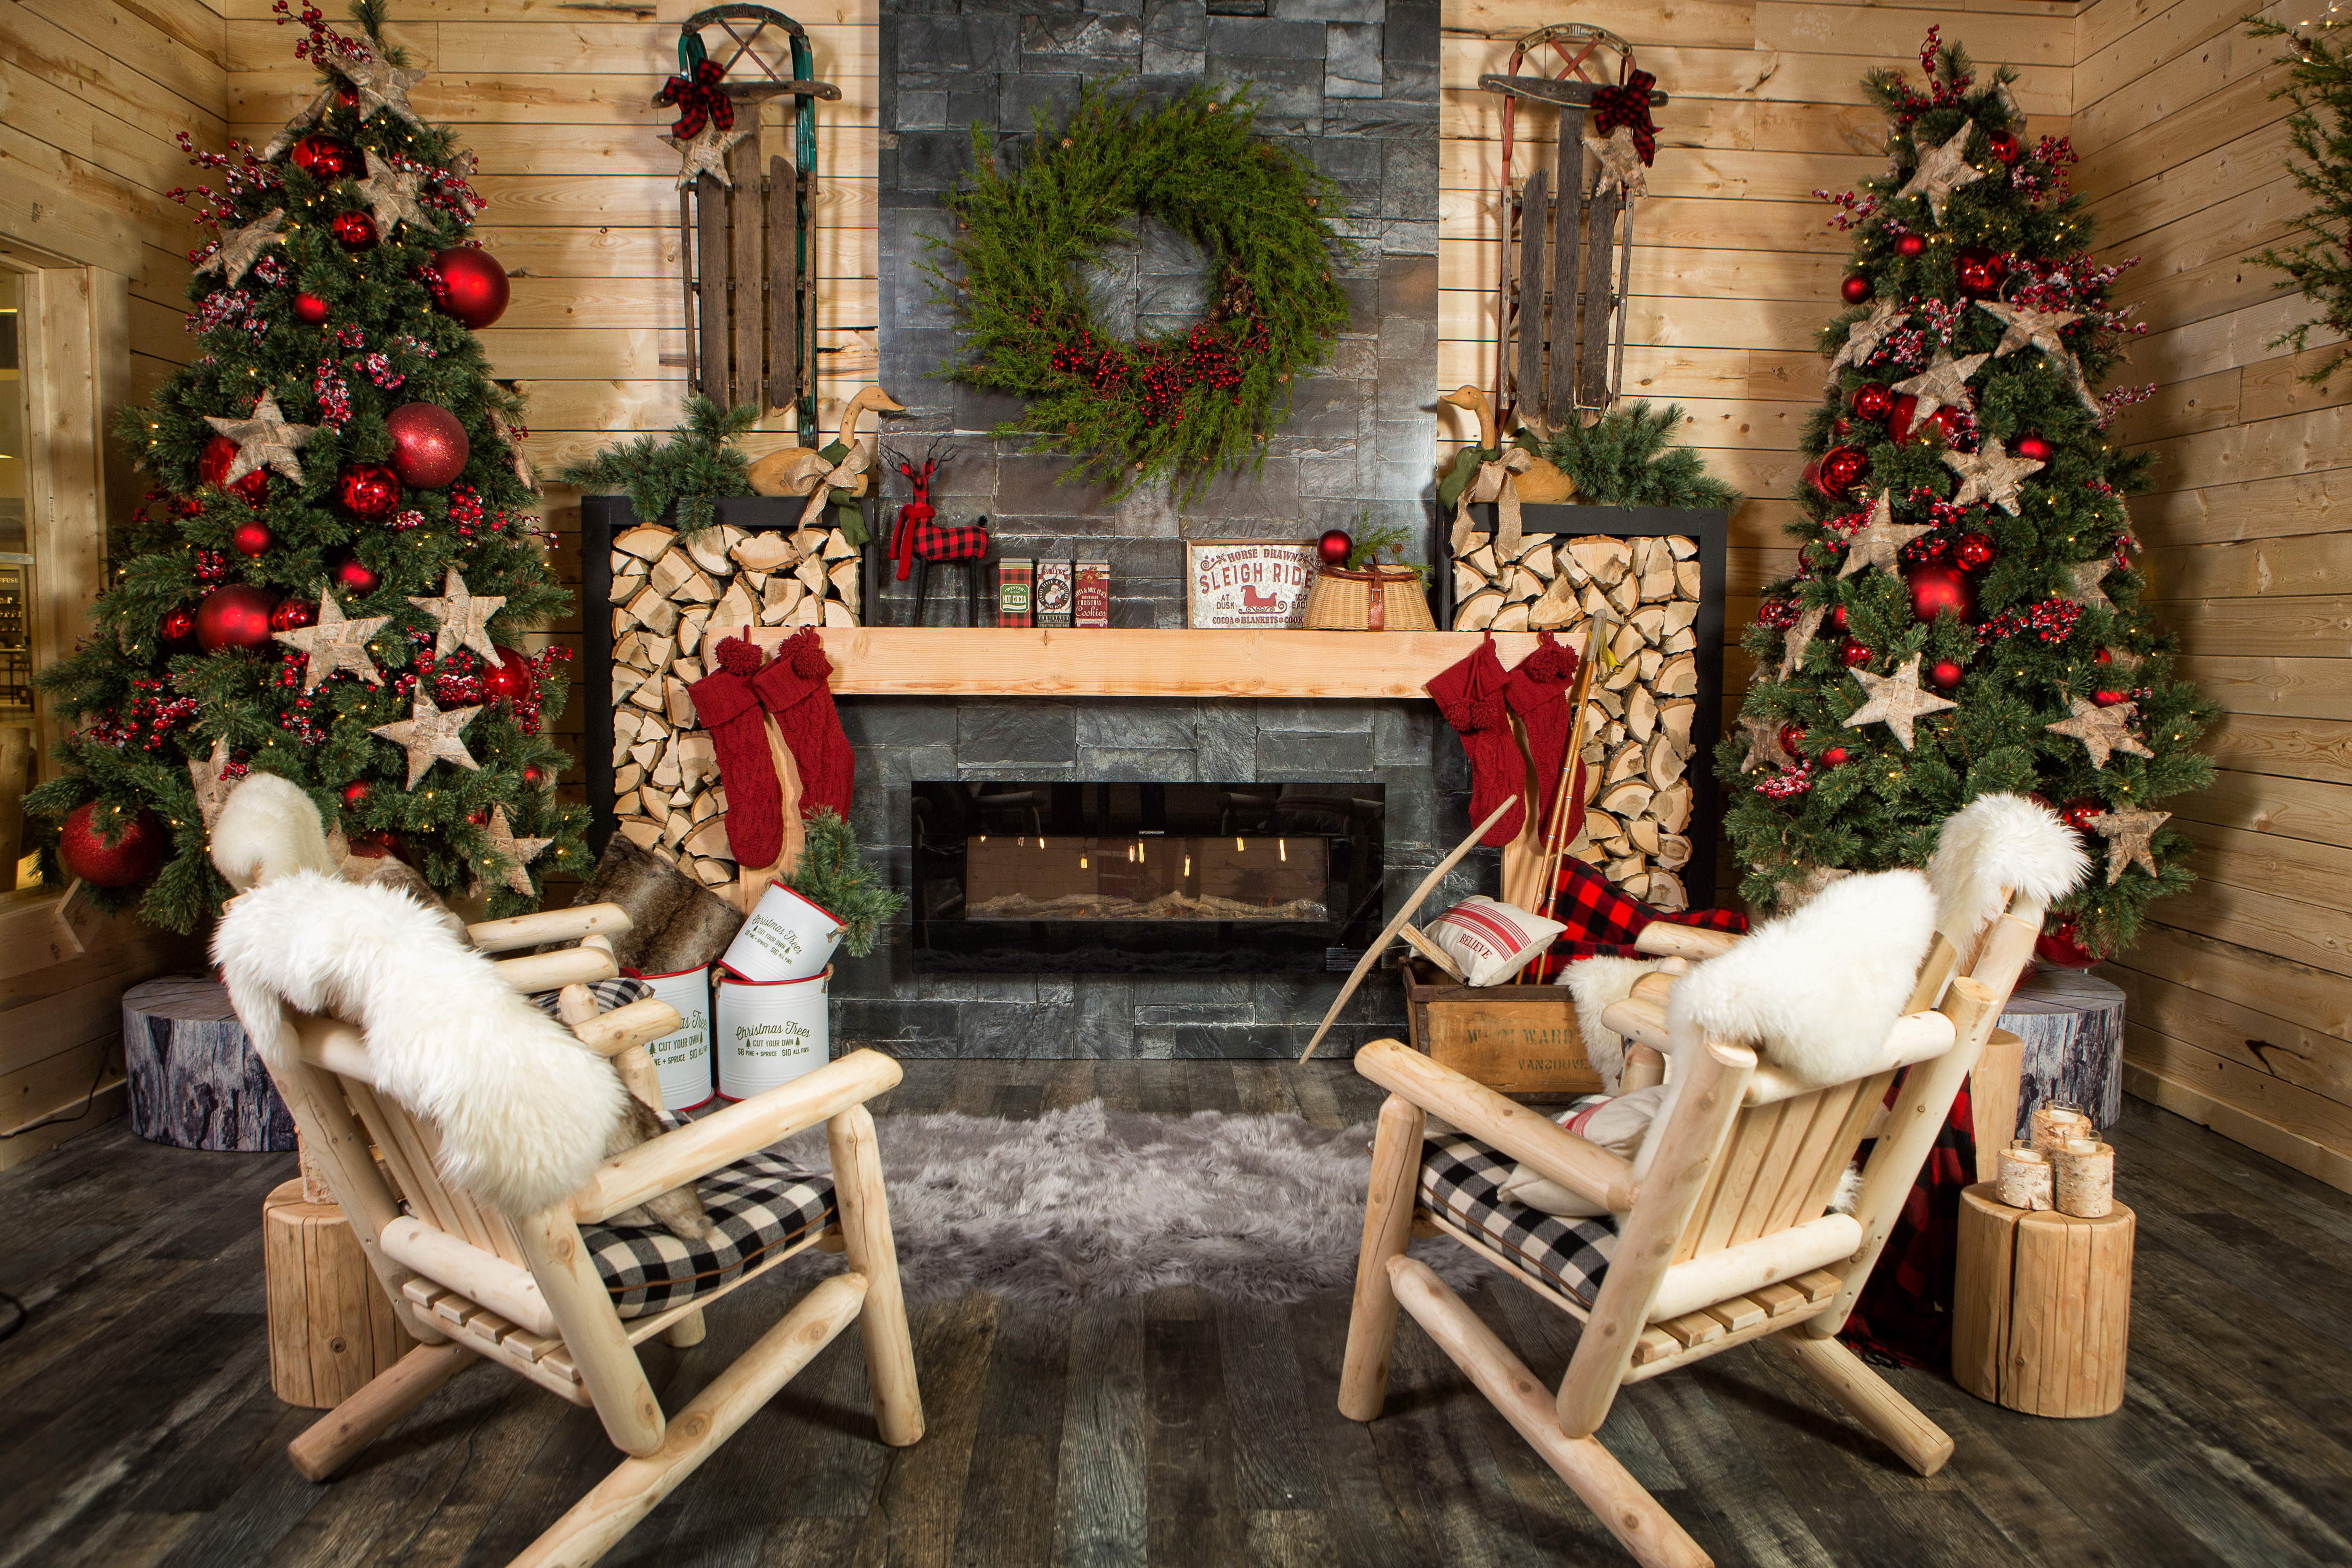 Cozy looking Christmas cabin scene with a fireplace